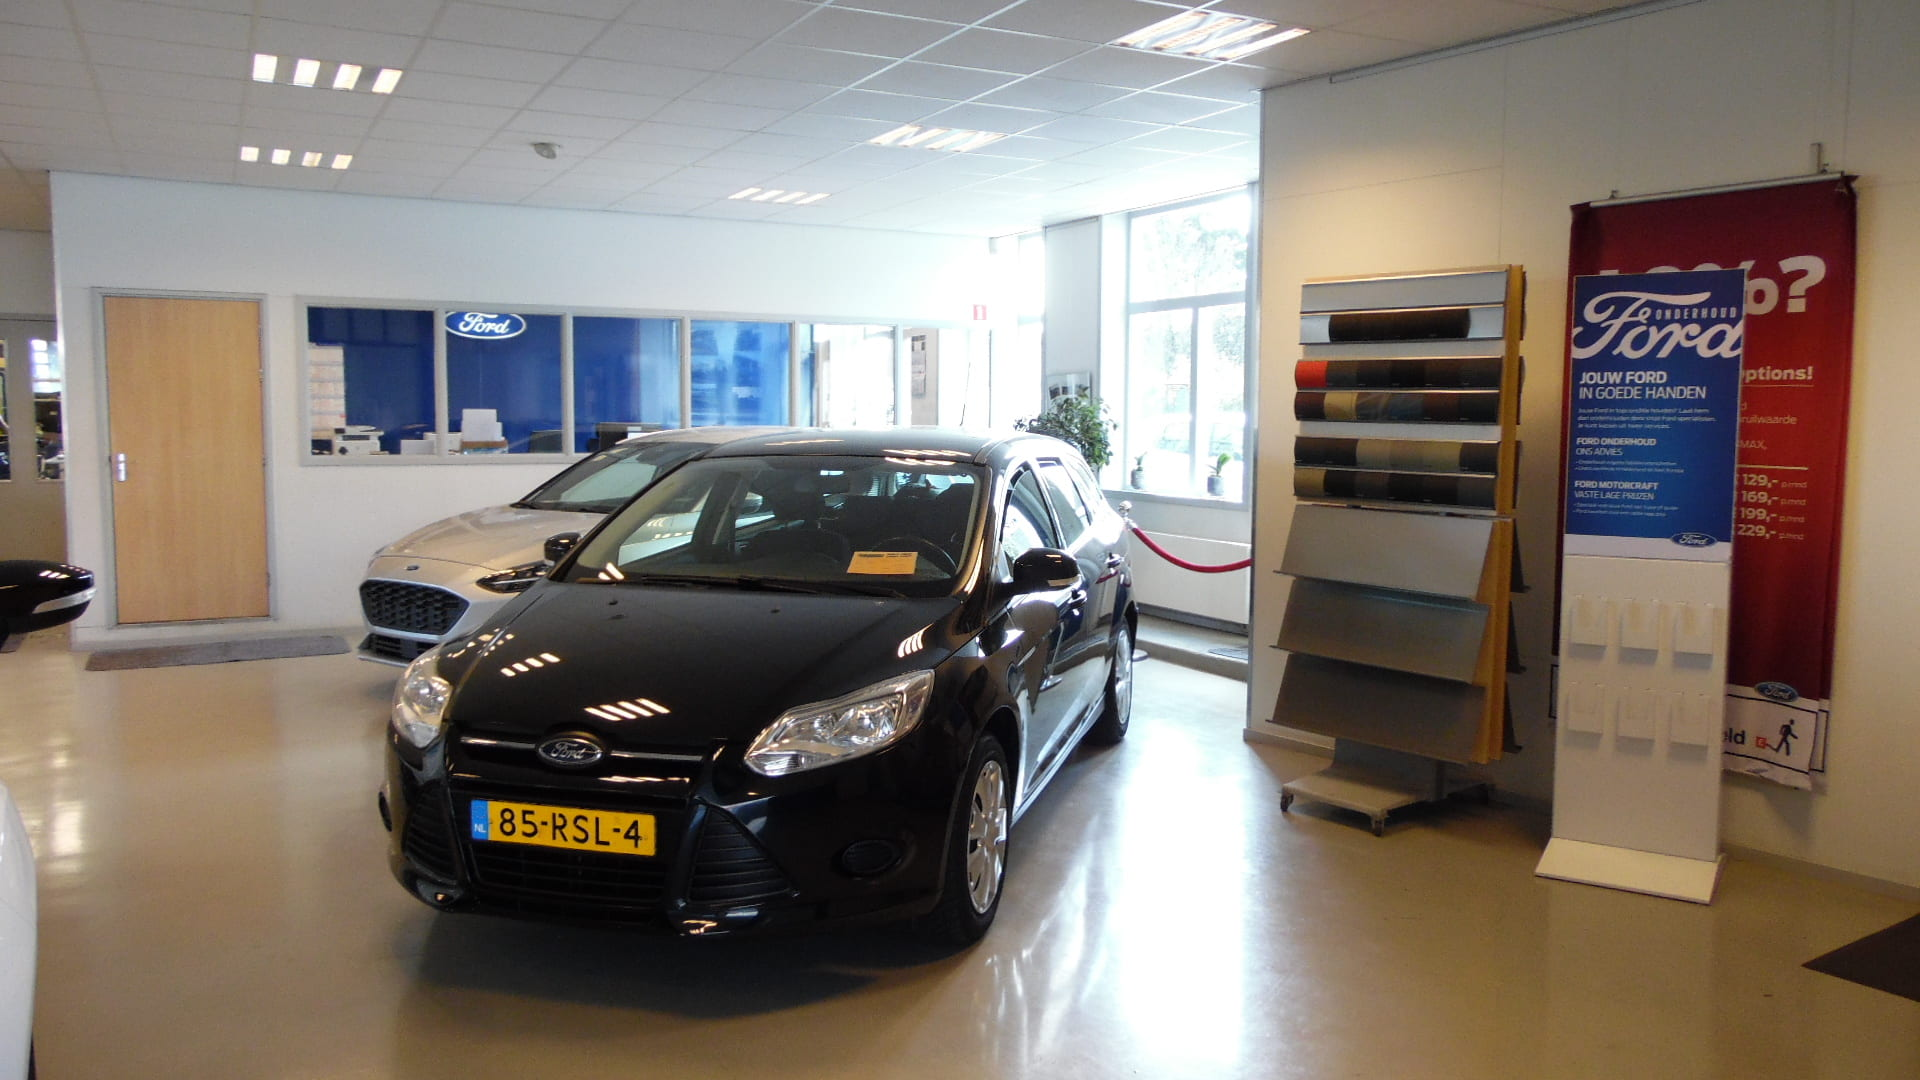 Ford Focus Occasion 2014 bij Garage Dunnebier in Assendelft